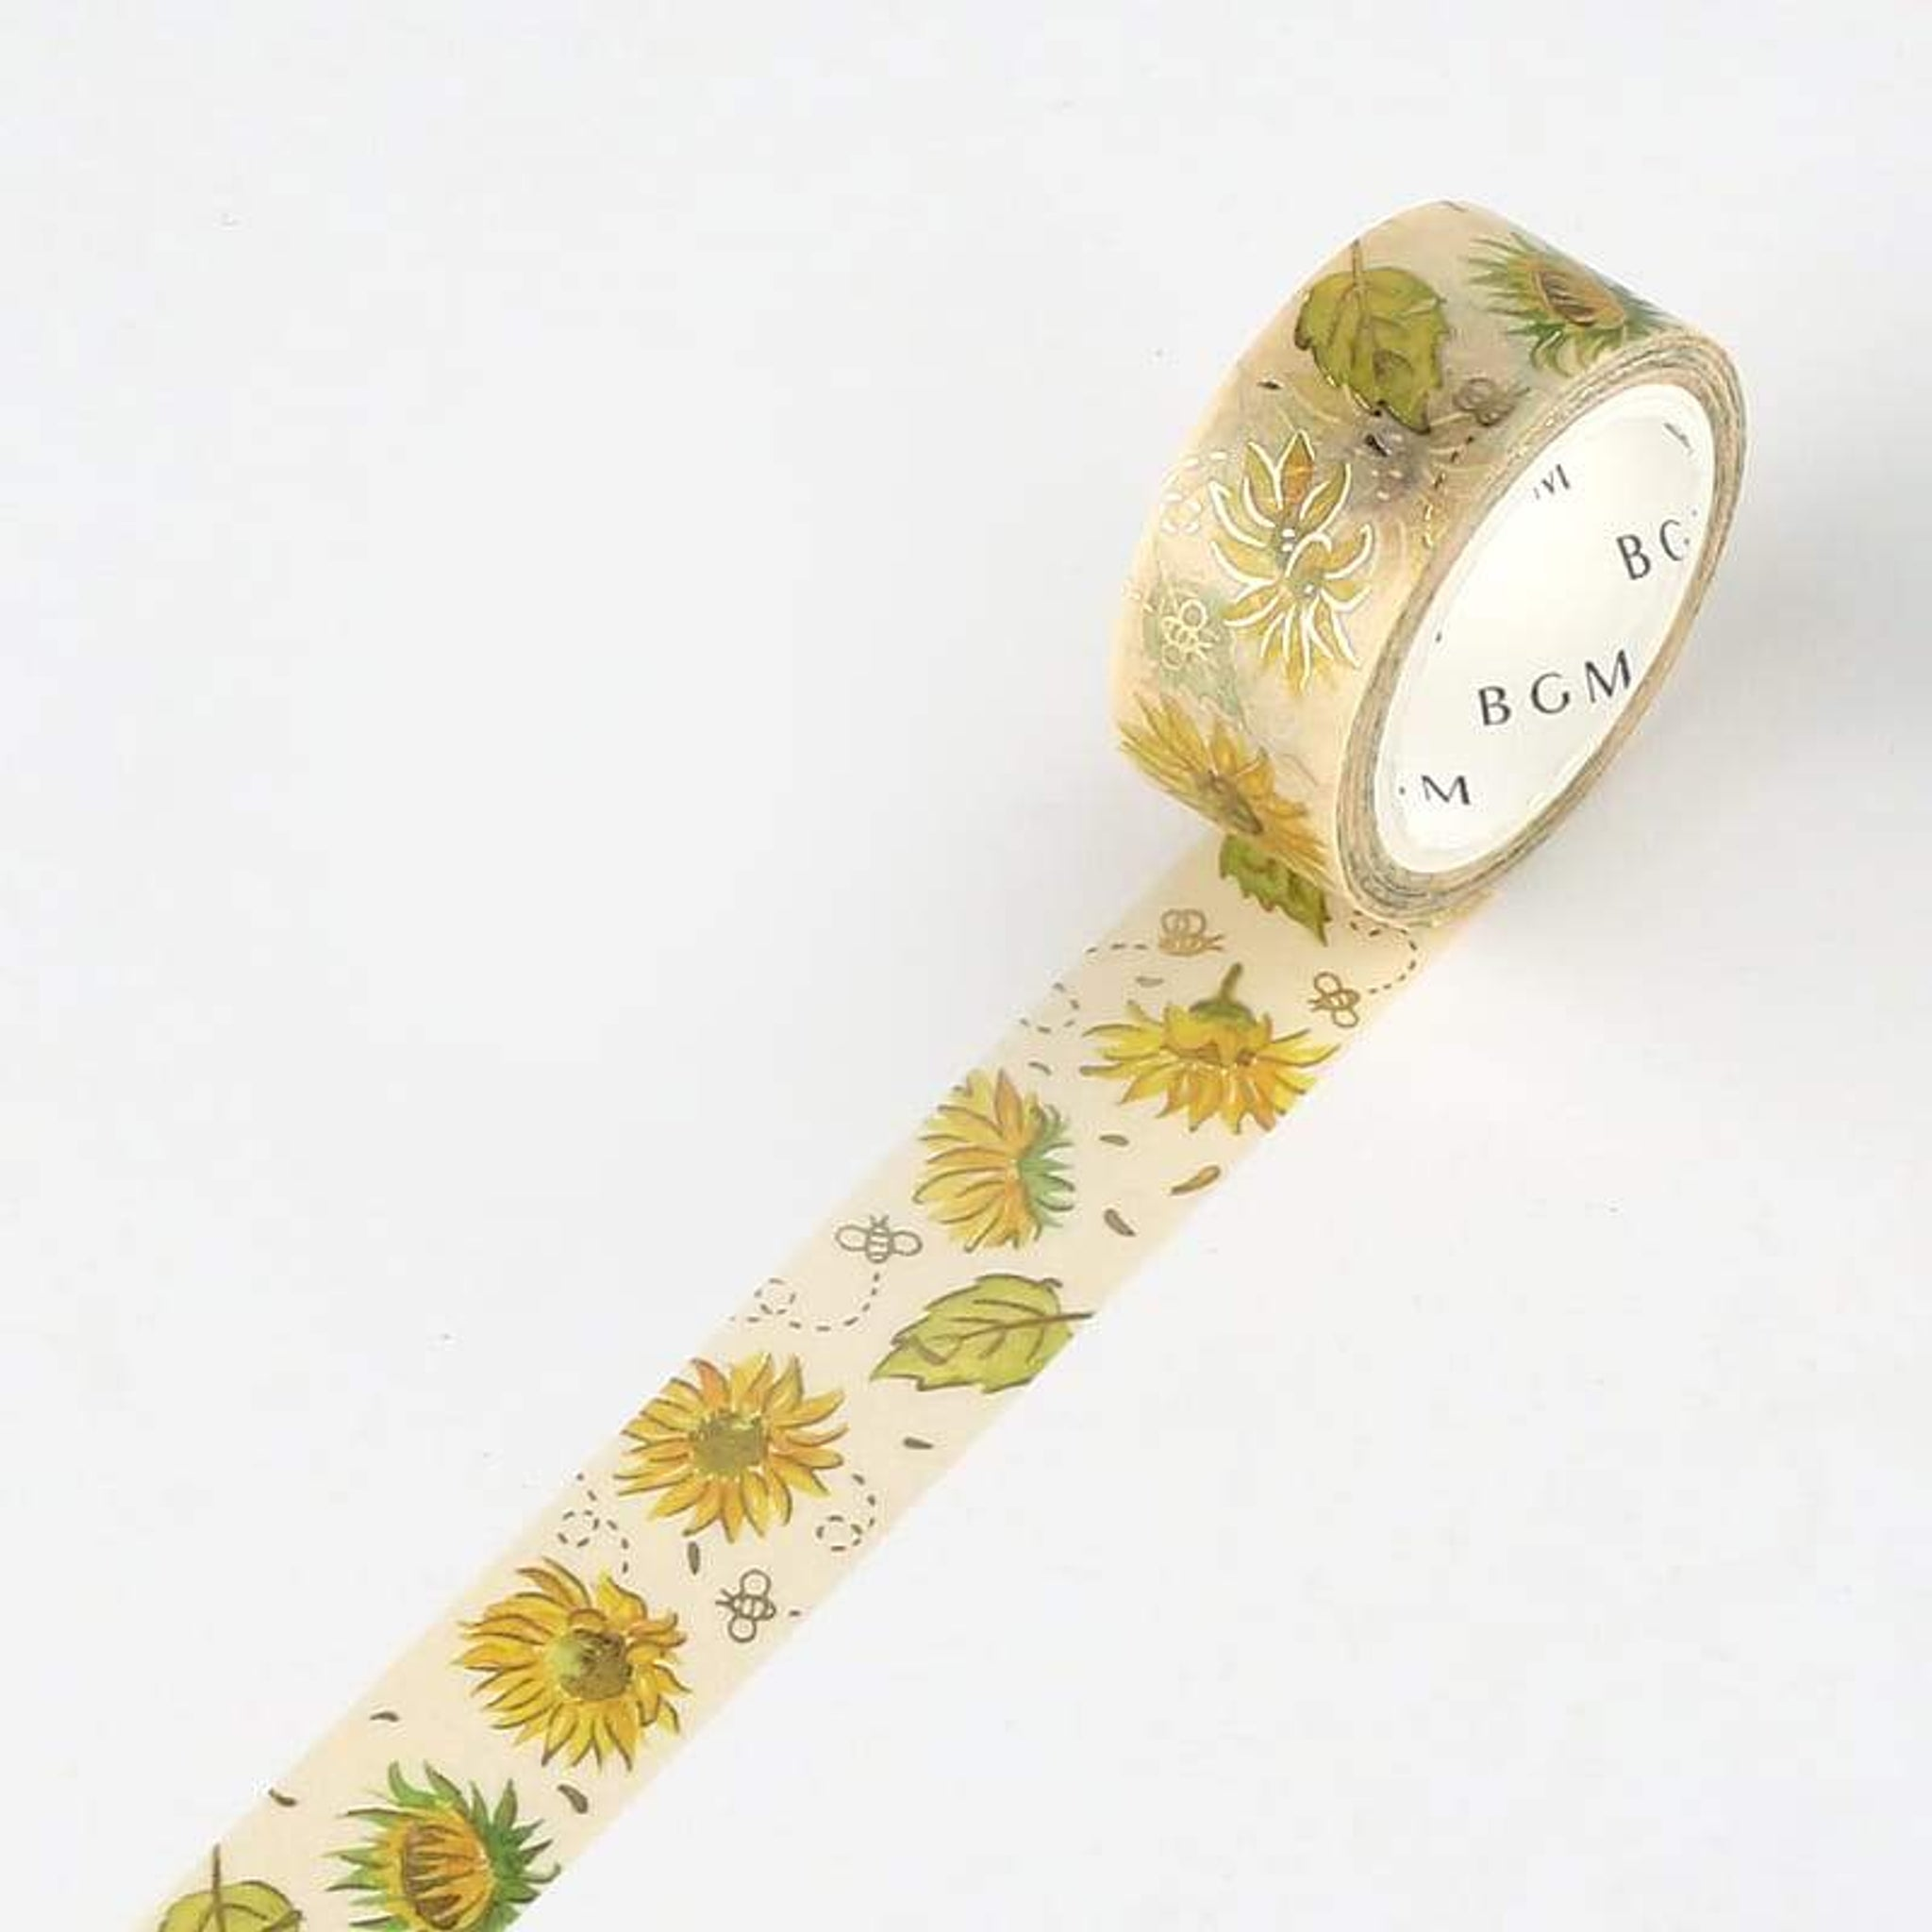 BGM Summer Sunflower Washi Tape